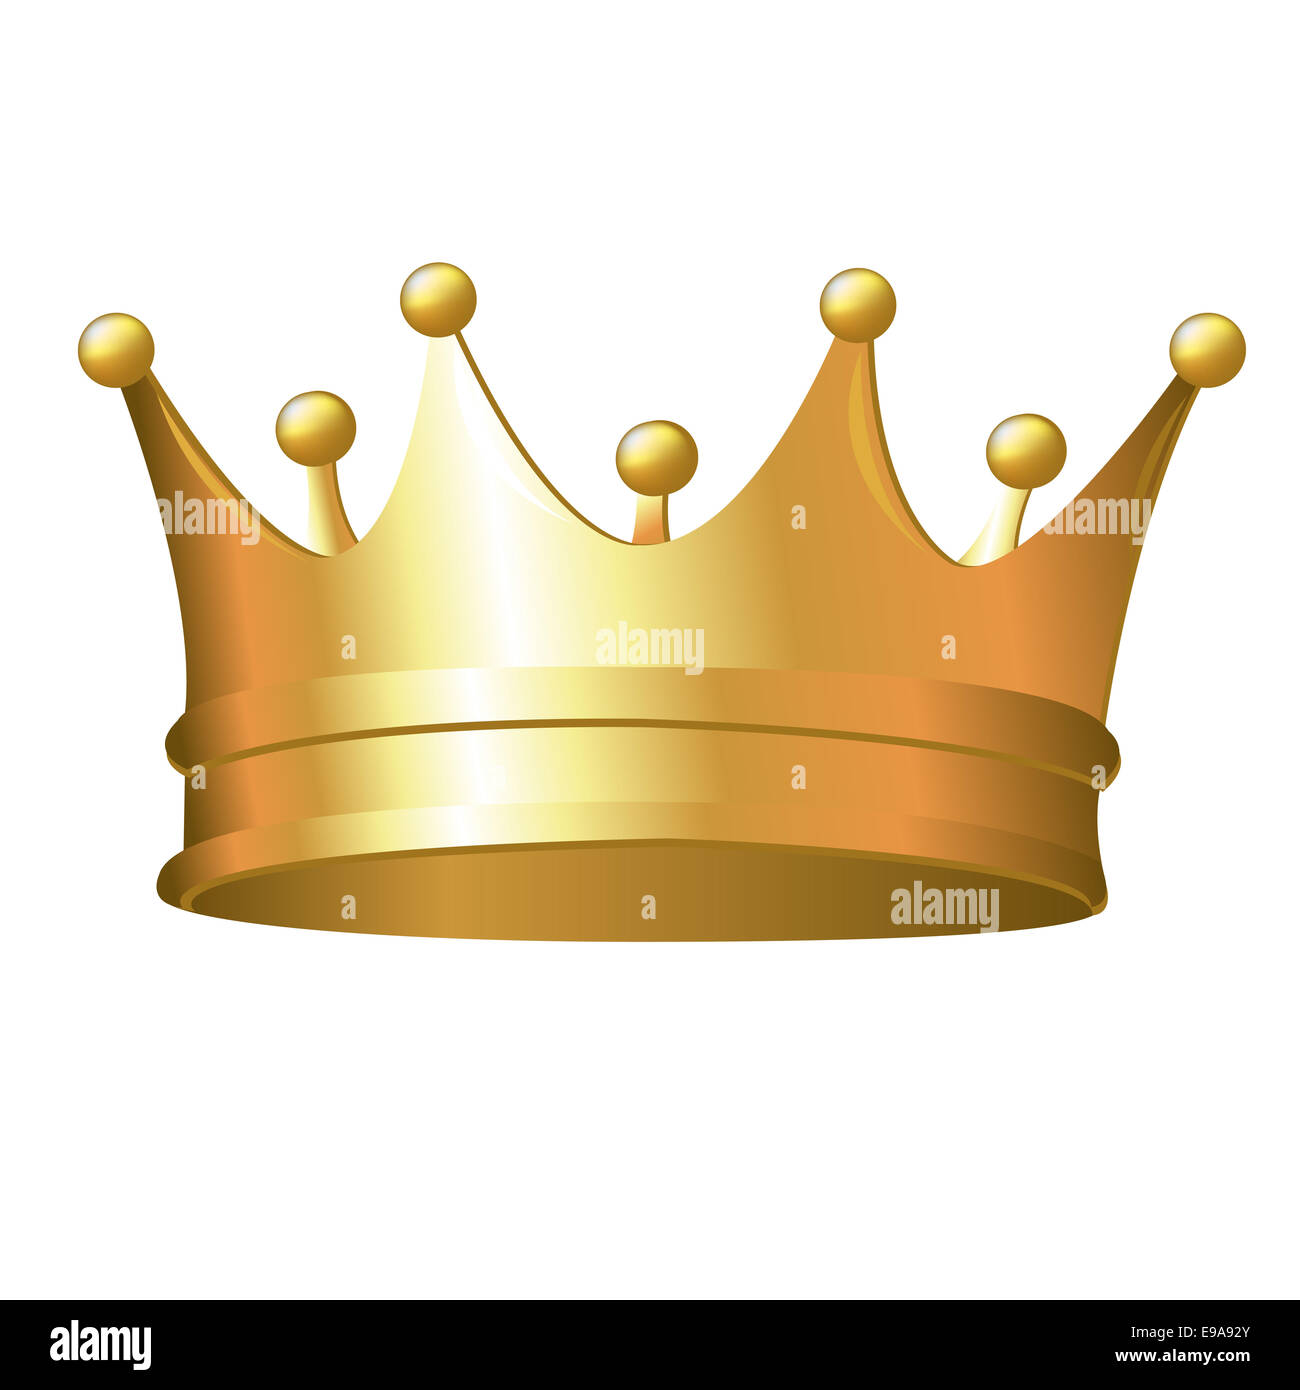 Gold Crown Stock Photos & Gold Crown Stock Images - Alamy